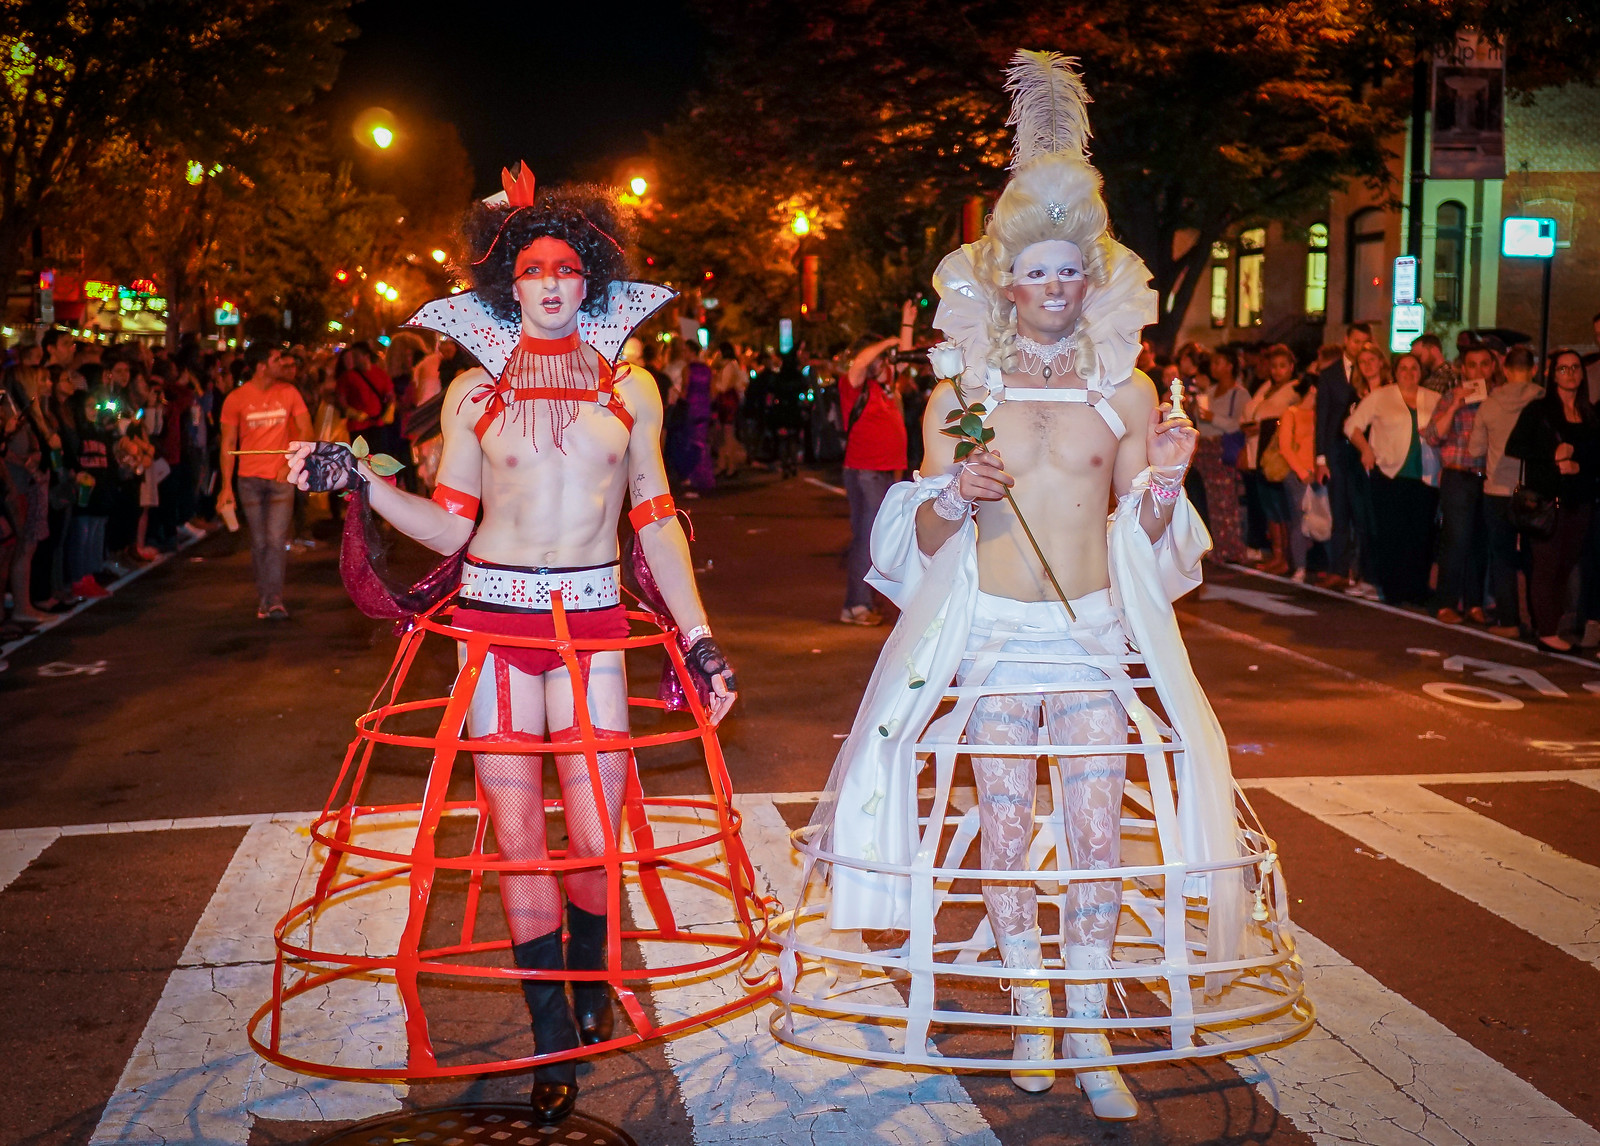 2017.10.24 Dupont Circle High Heel Race, Washington, DC USA 9909